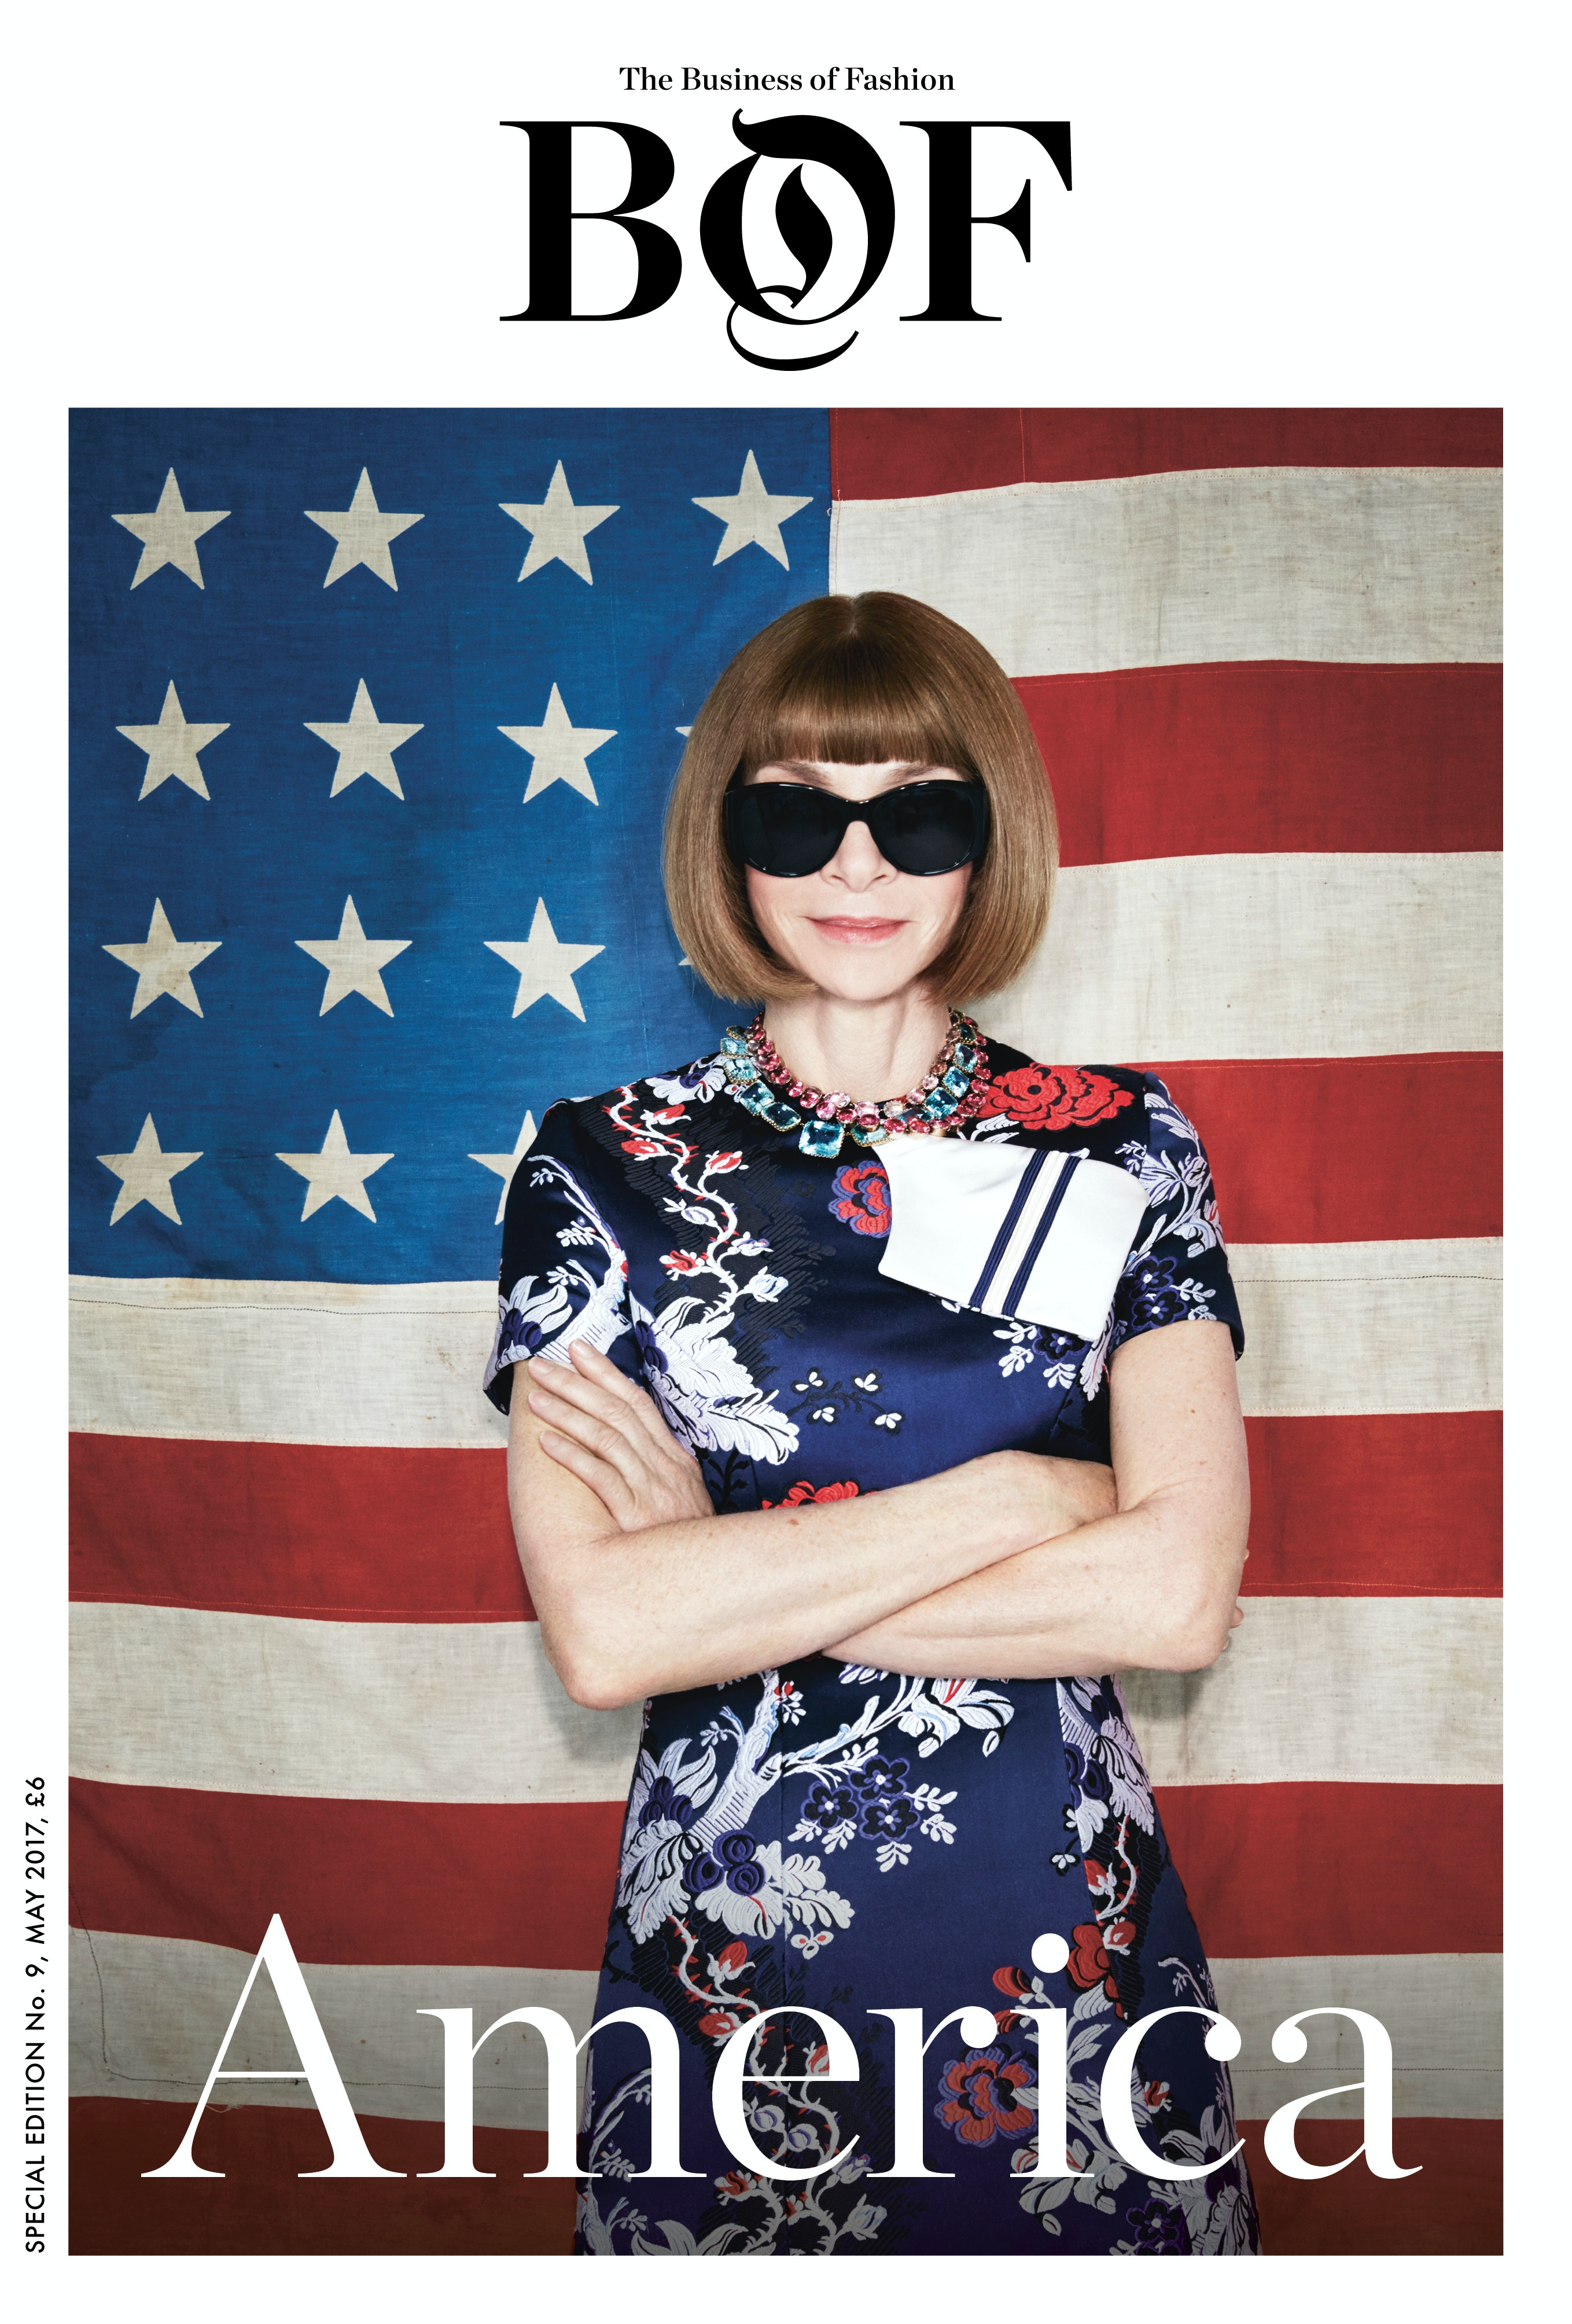 Anna Wintour on the cover of BoF's special print edition | Photo: Patrick Demarchelier